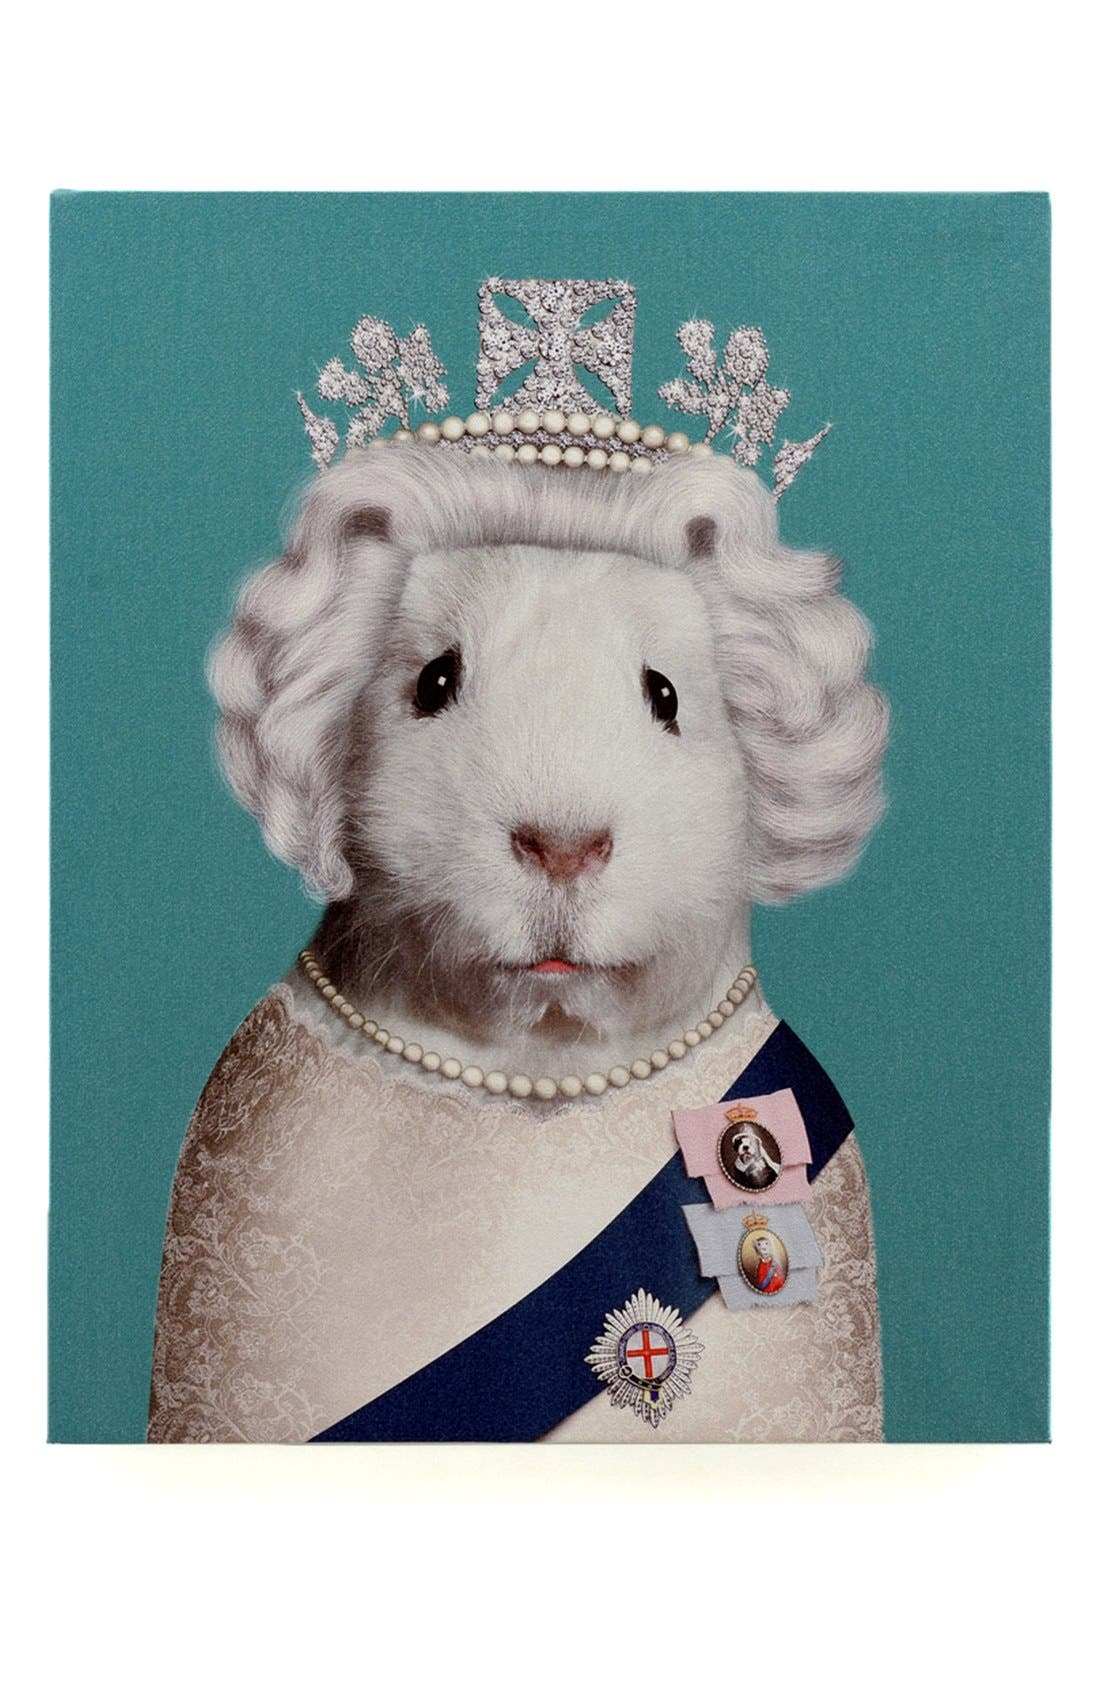 Alternate Image 1 Selected - Empire Art Direct 'Pets Rock™ - HRH' Giclée Wall Art